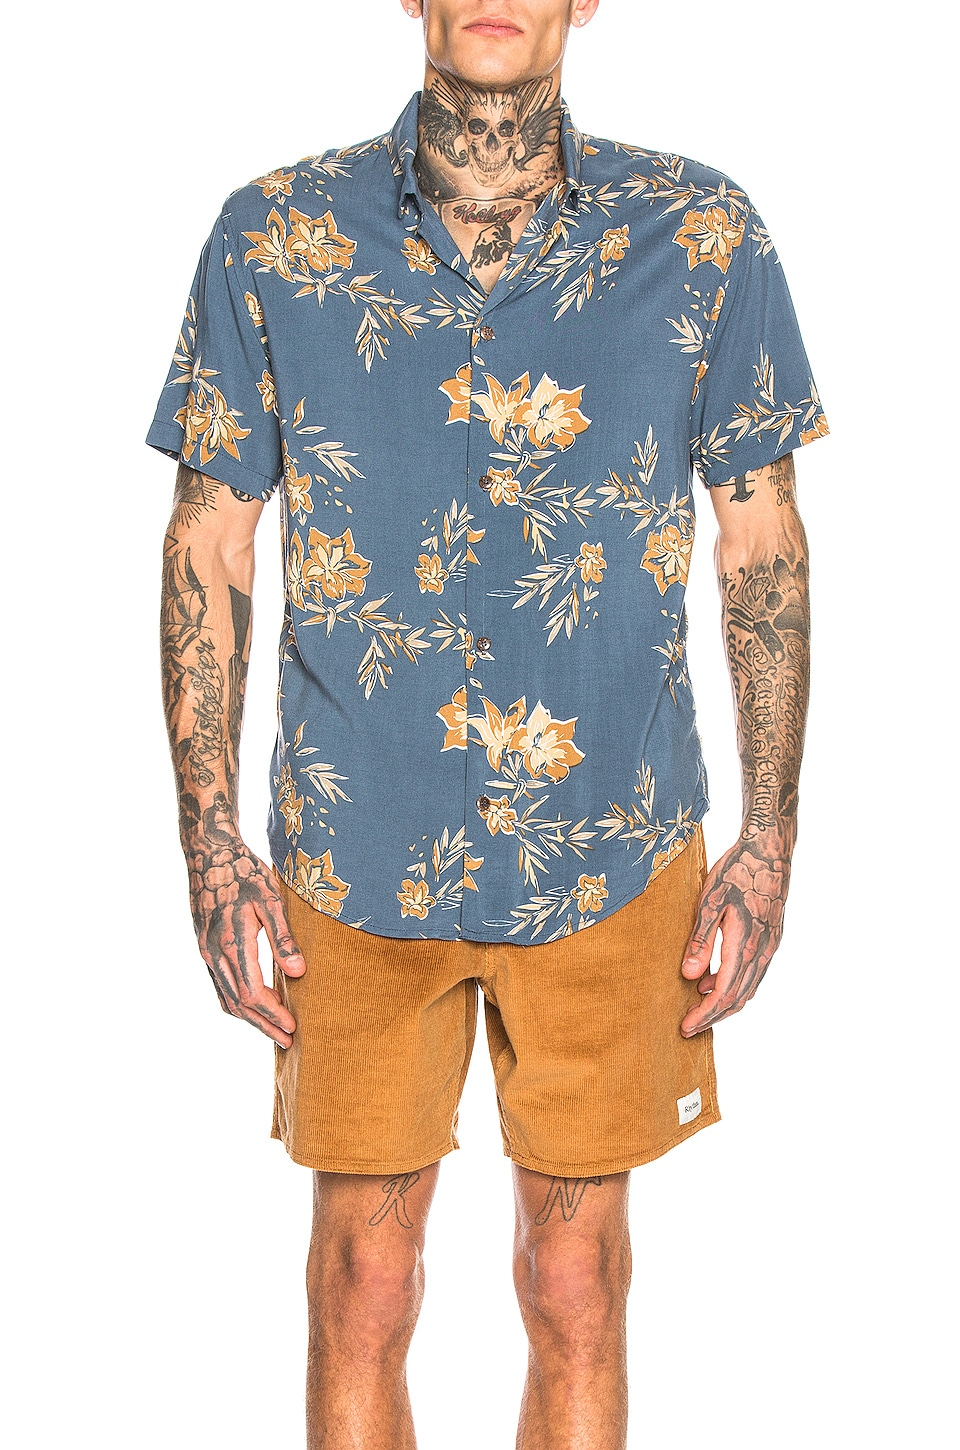 Rhythm Vintage Aloha Shirt in Pacific Blue